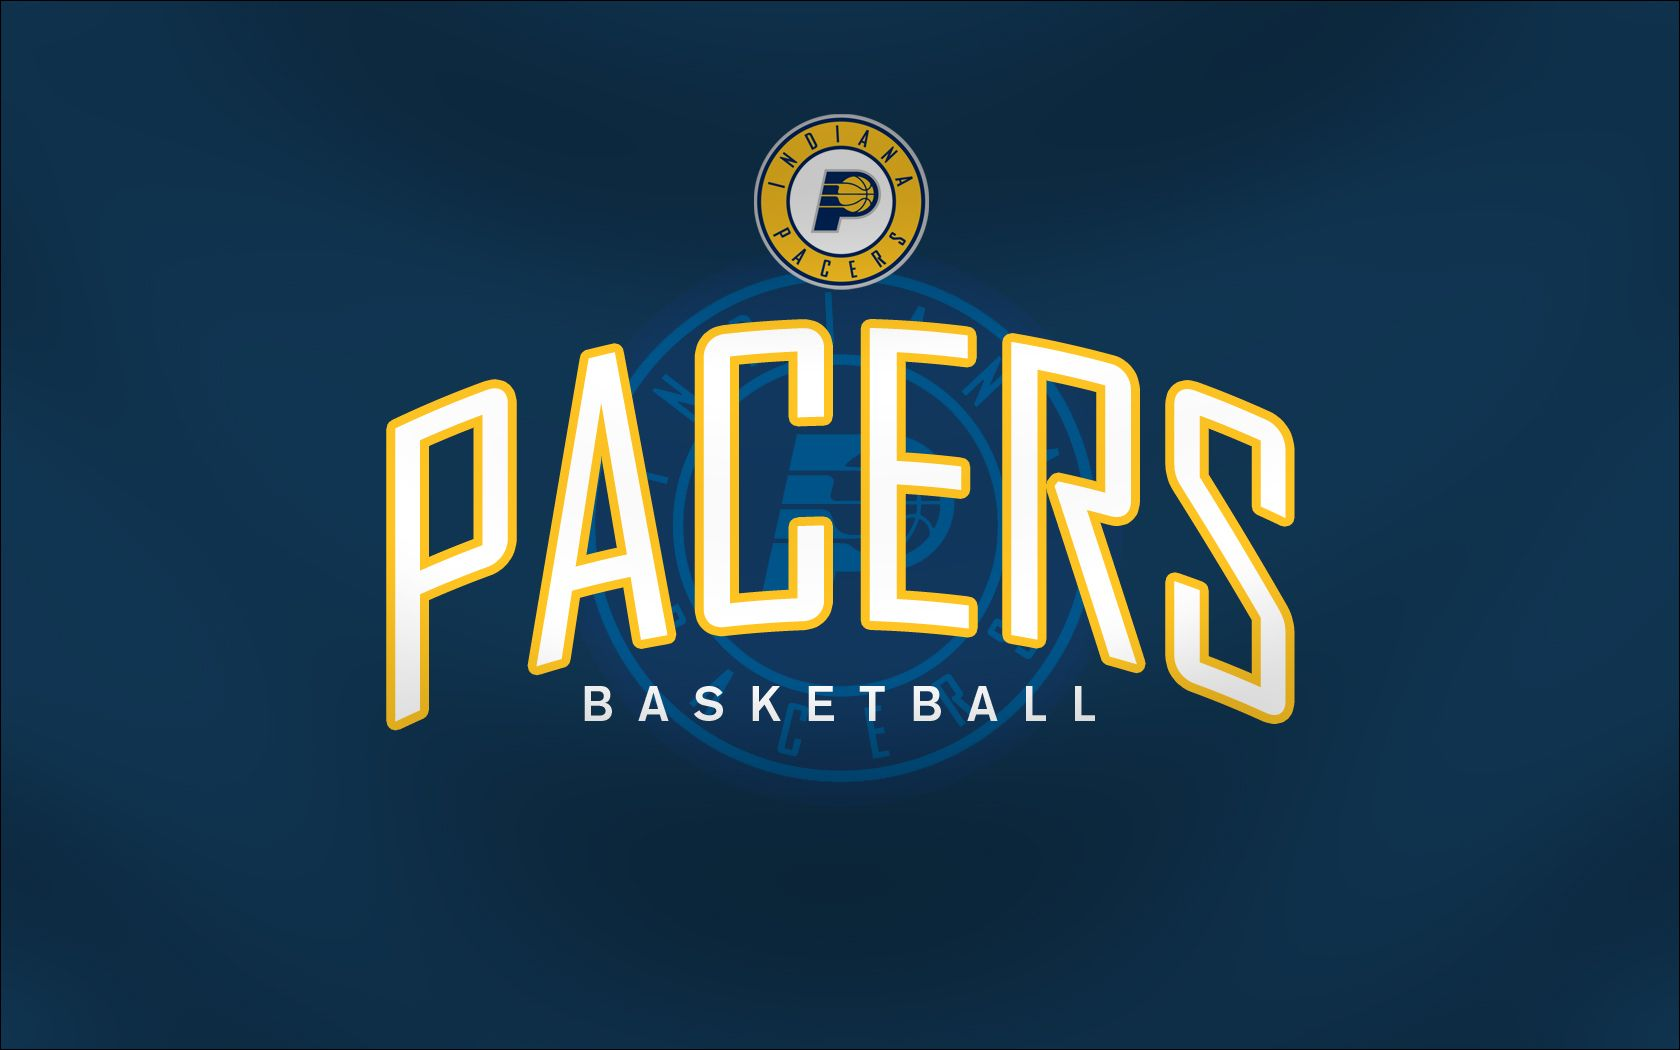 Pacers Indiana Basketball, Nba Basketball Teams, Logo Background, Wallpaper Downloads, Wallpaper Free